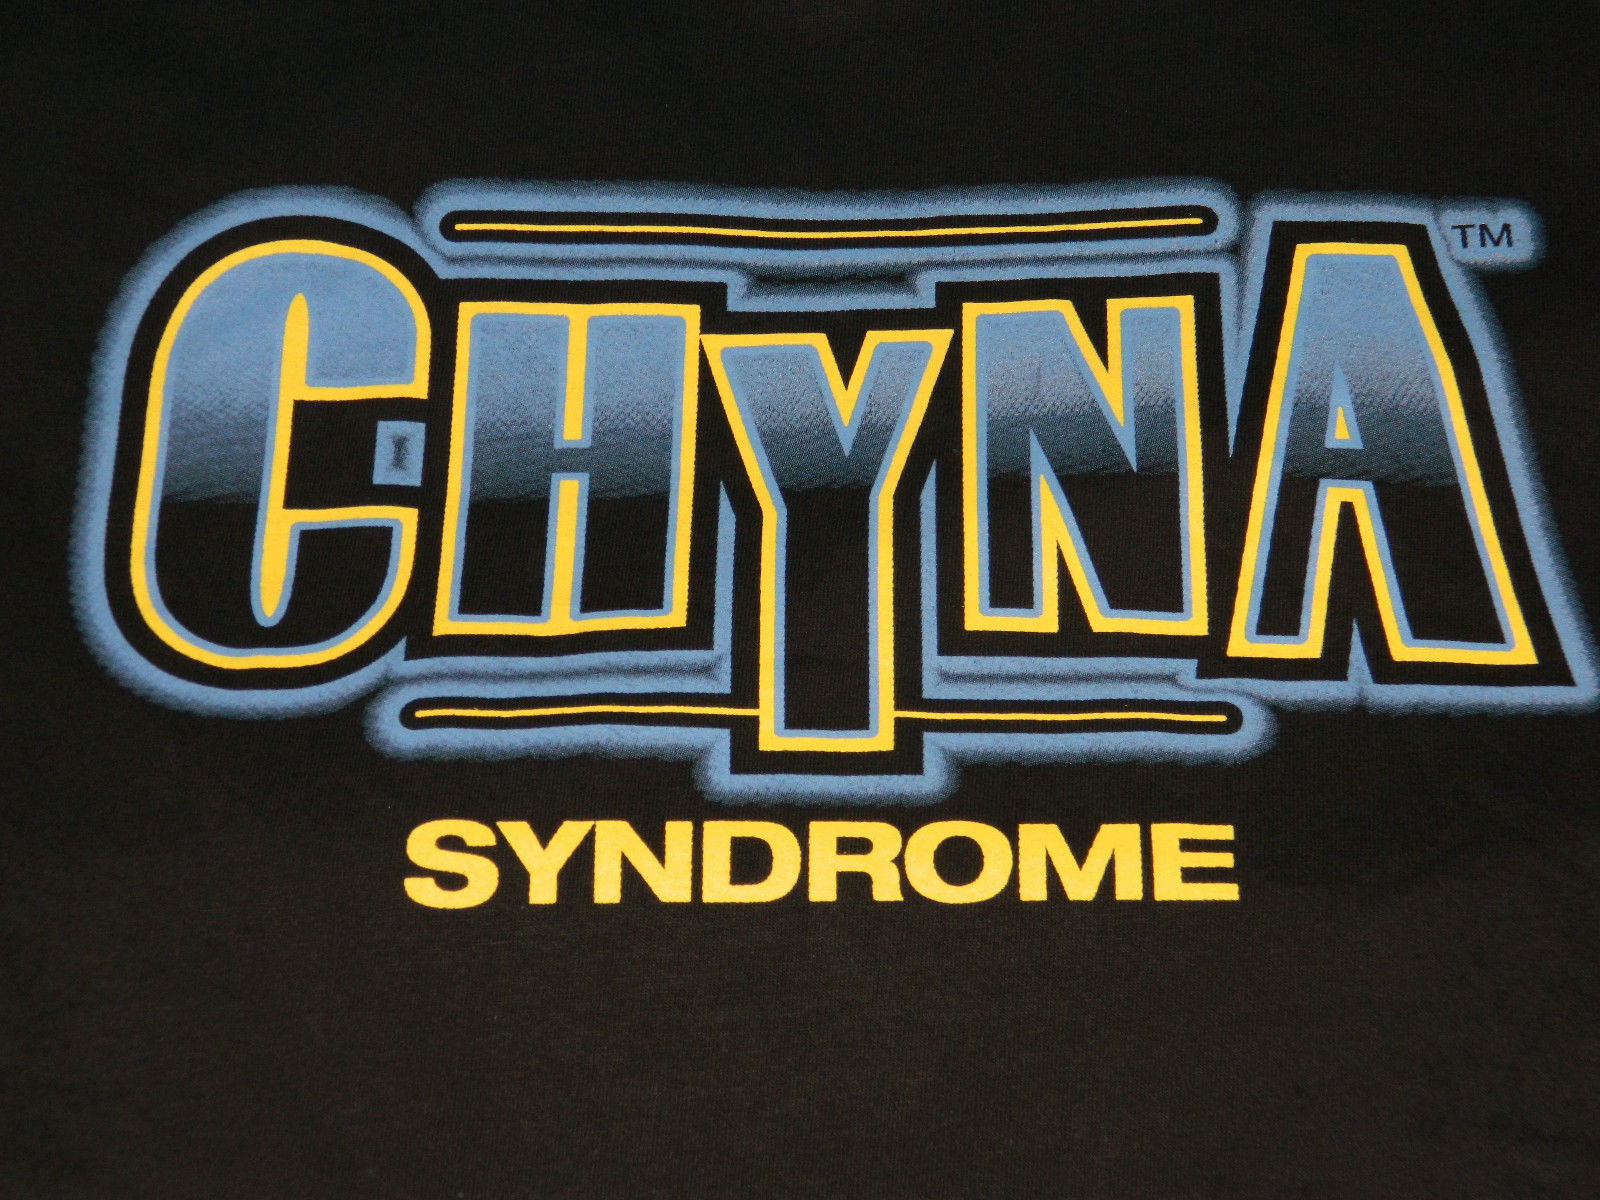 Chyna Syndrome shirt 2